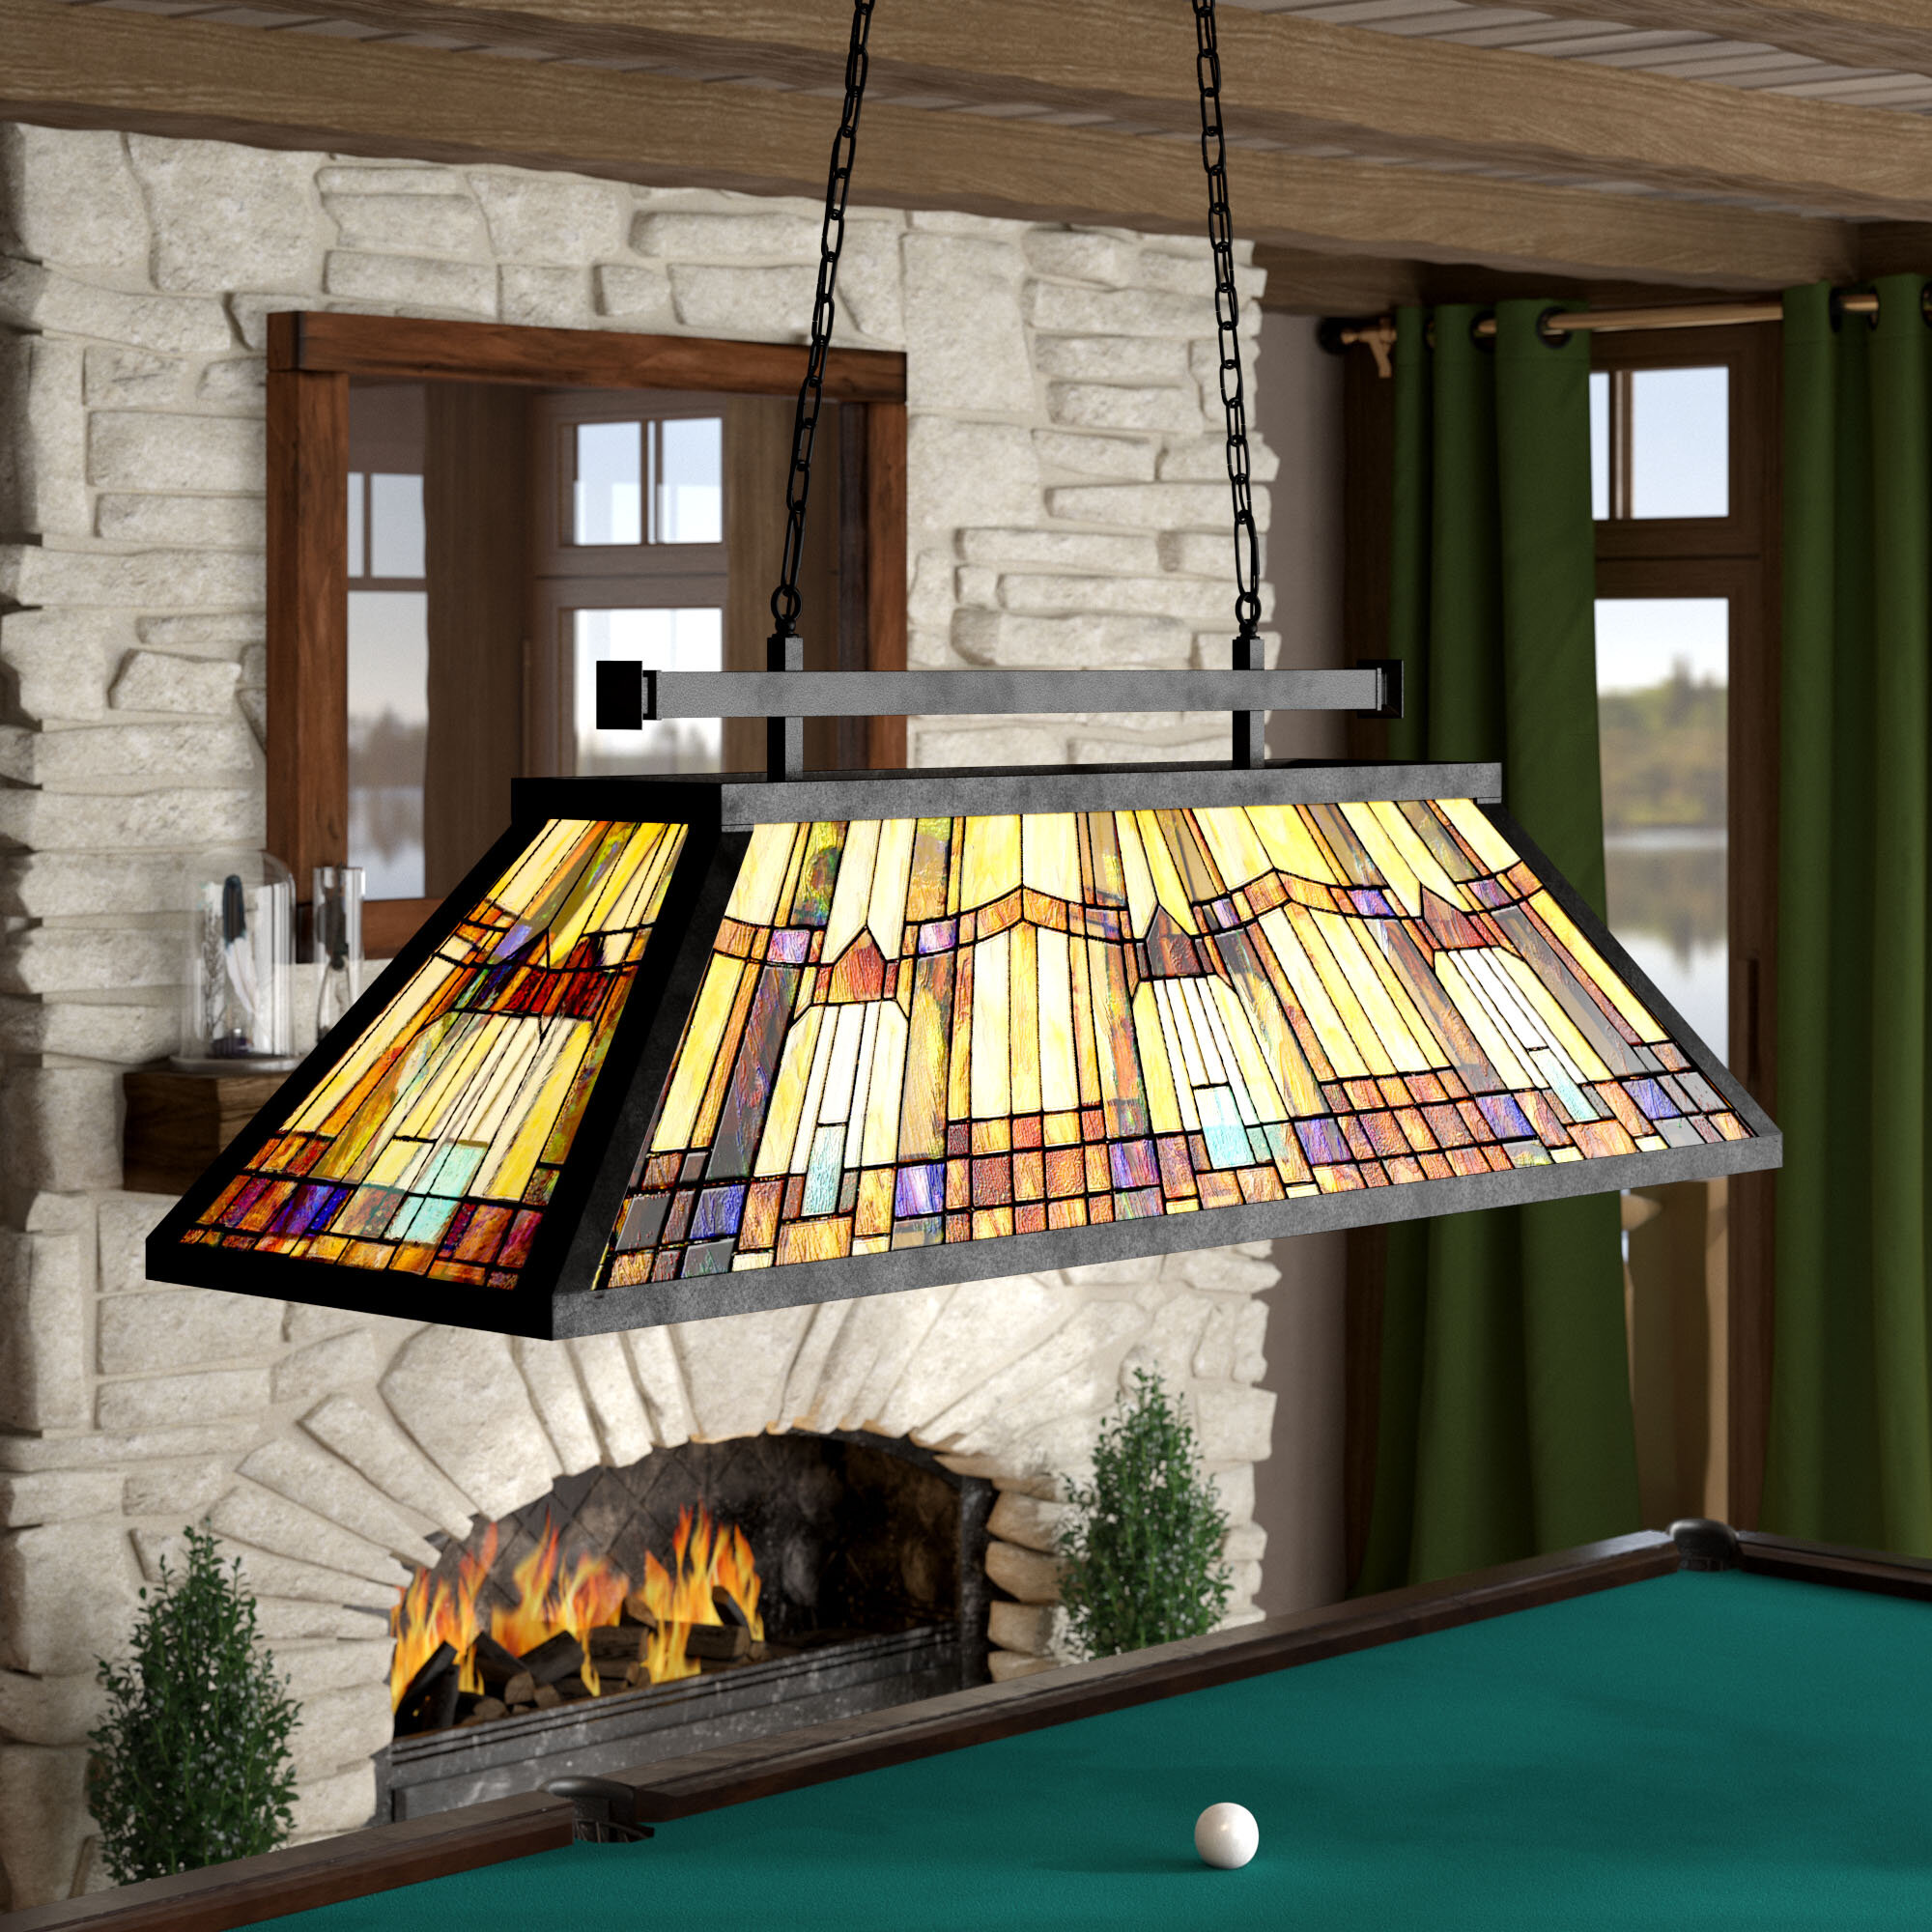 Bush pool table light